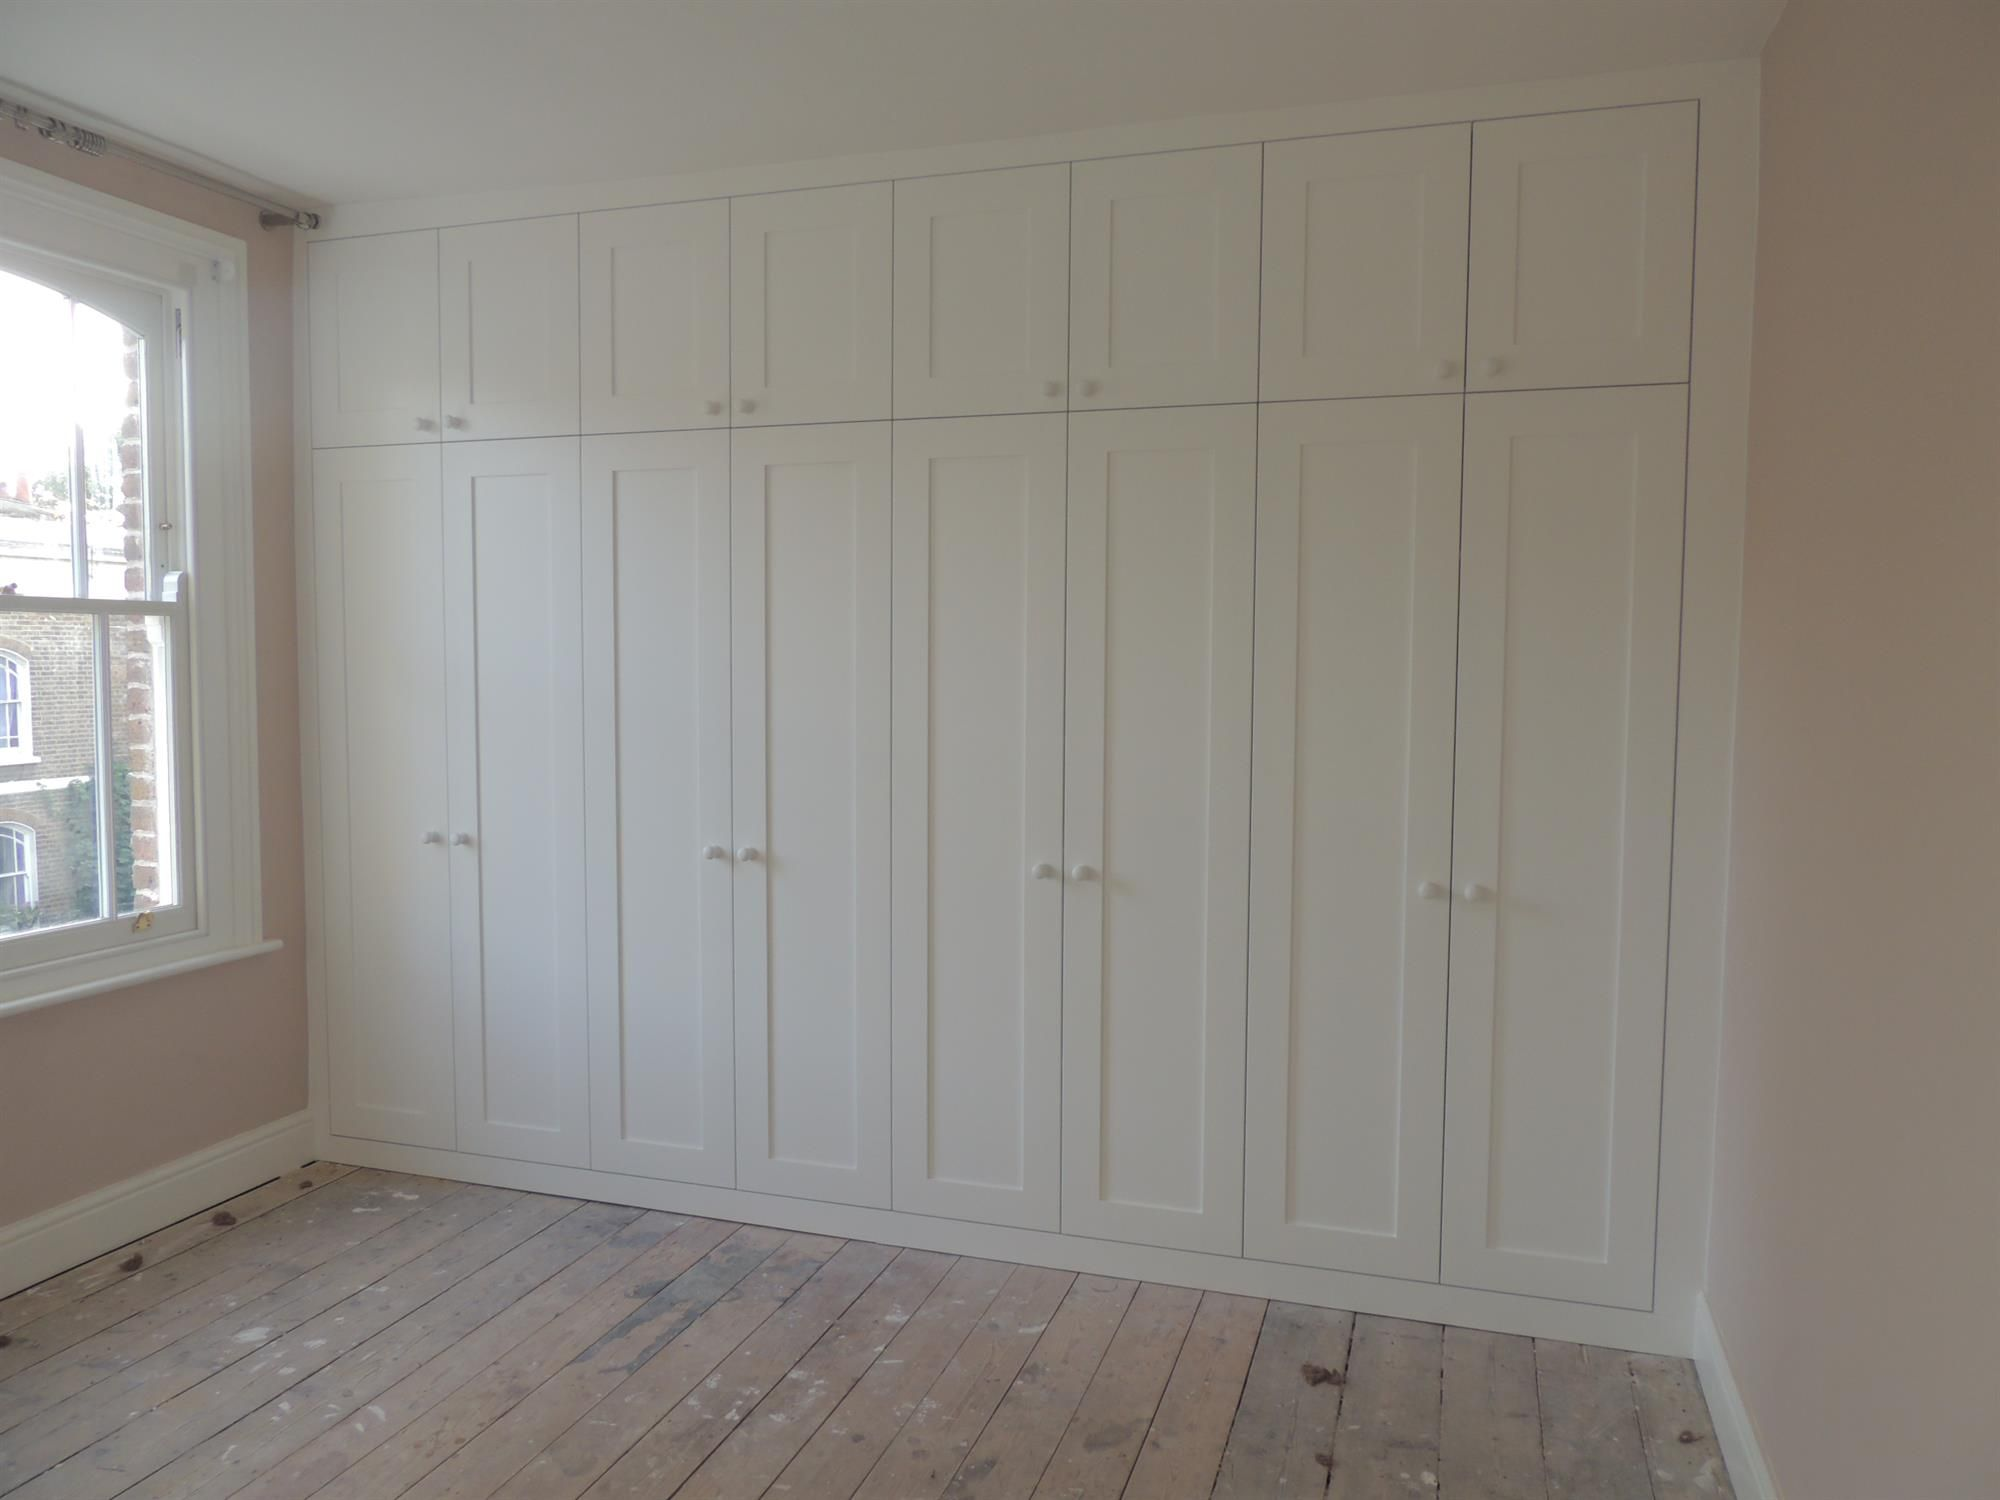 These units are built on either side and in front of the chimney breast. The…